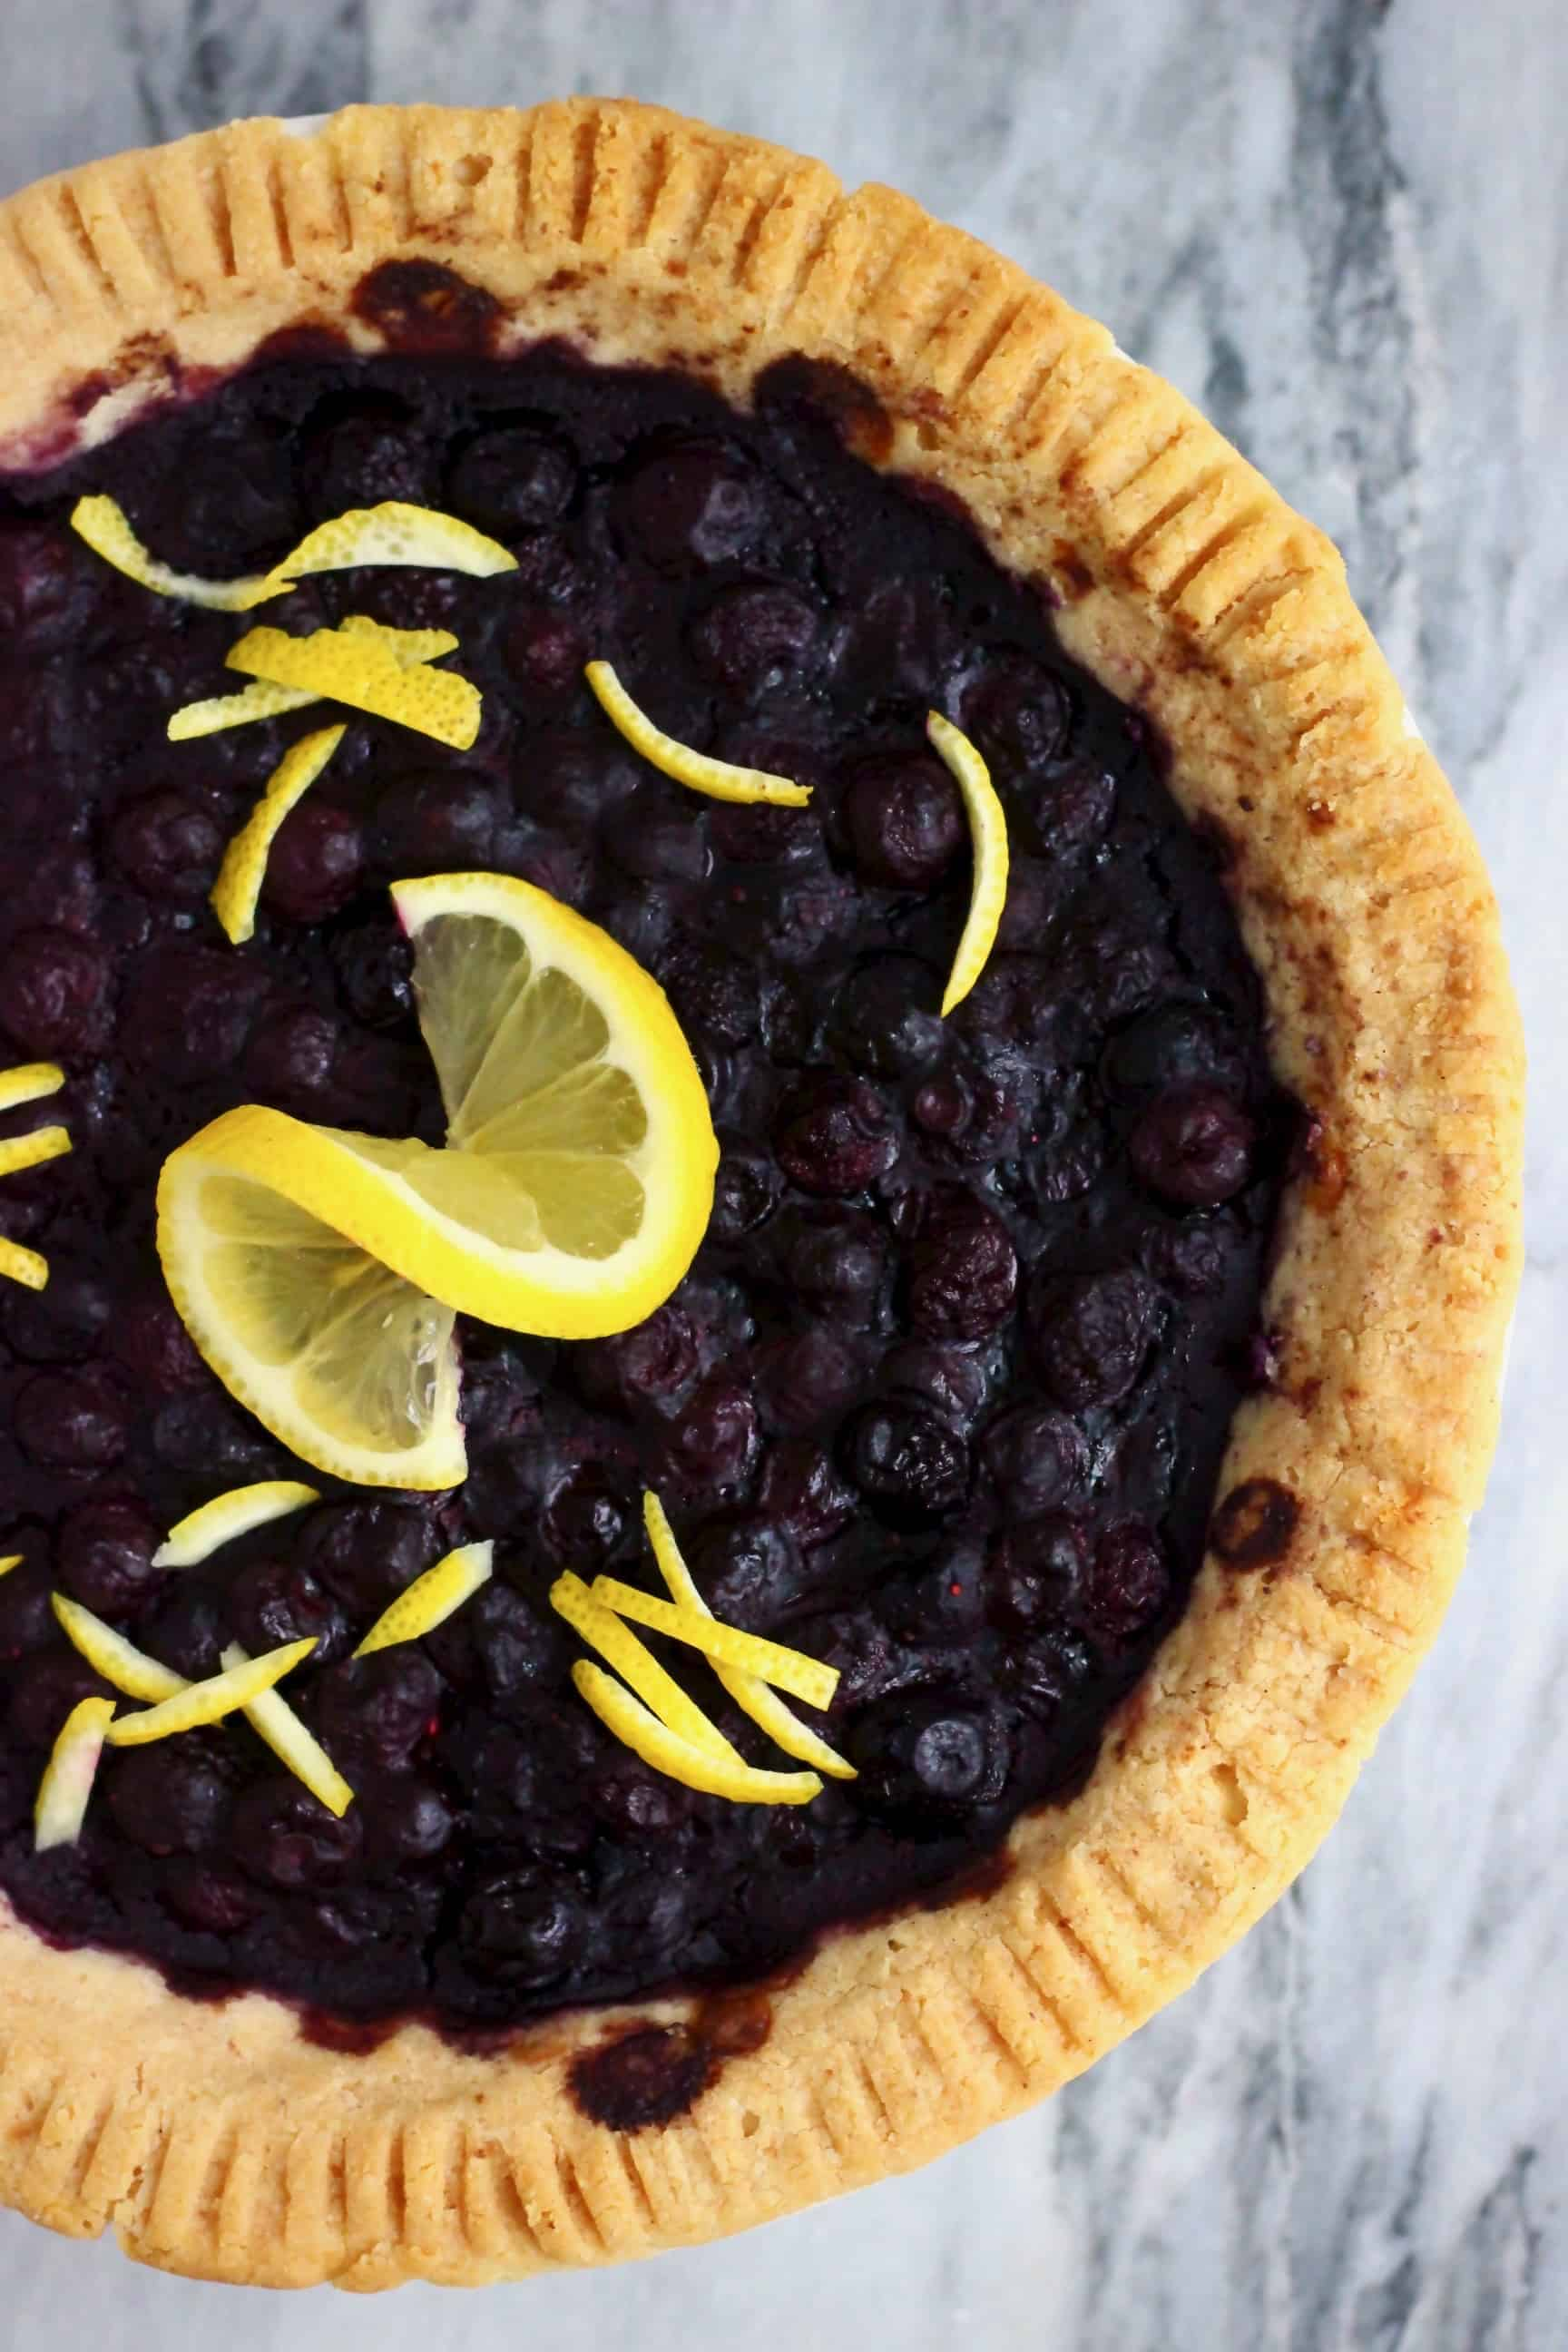 A vegan blueberry pie decorated with lemon peel and a slice of lemon against a marble background